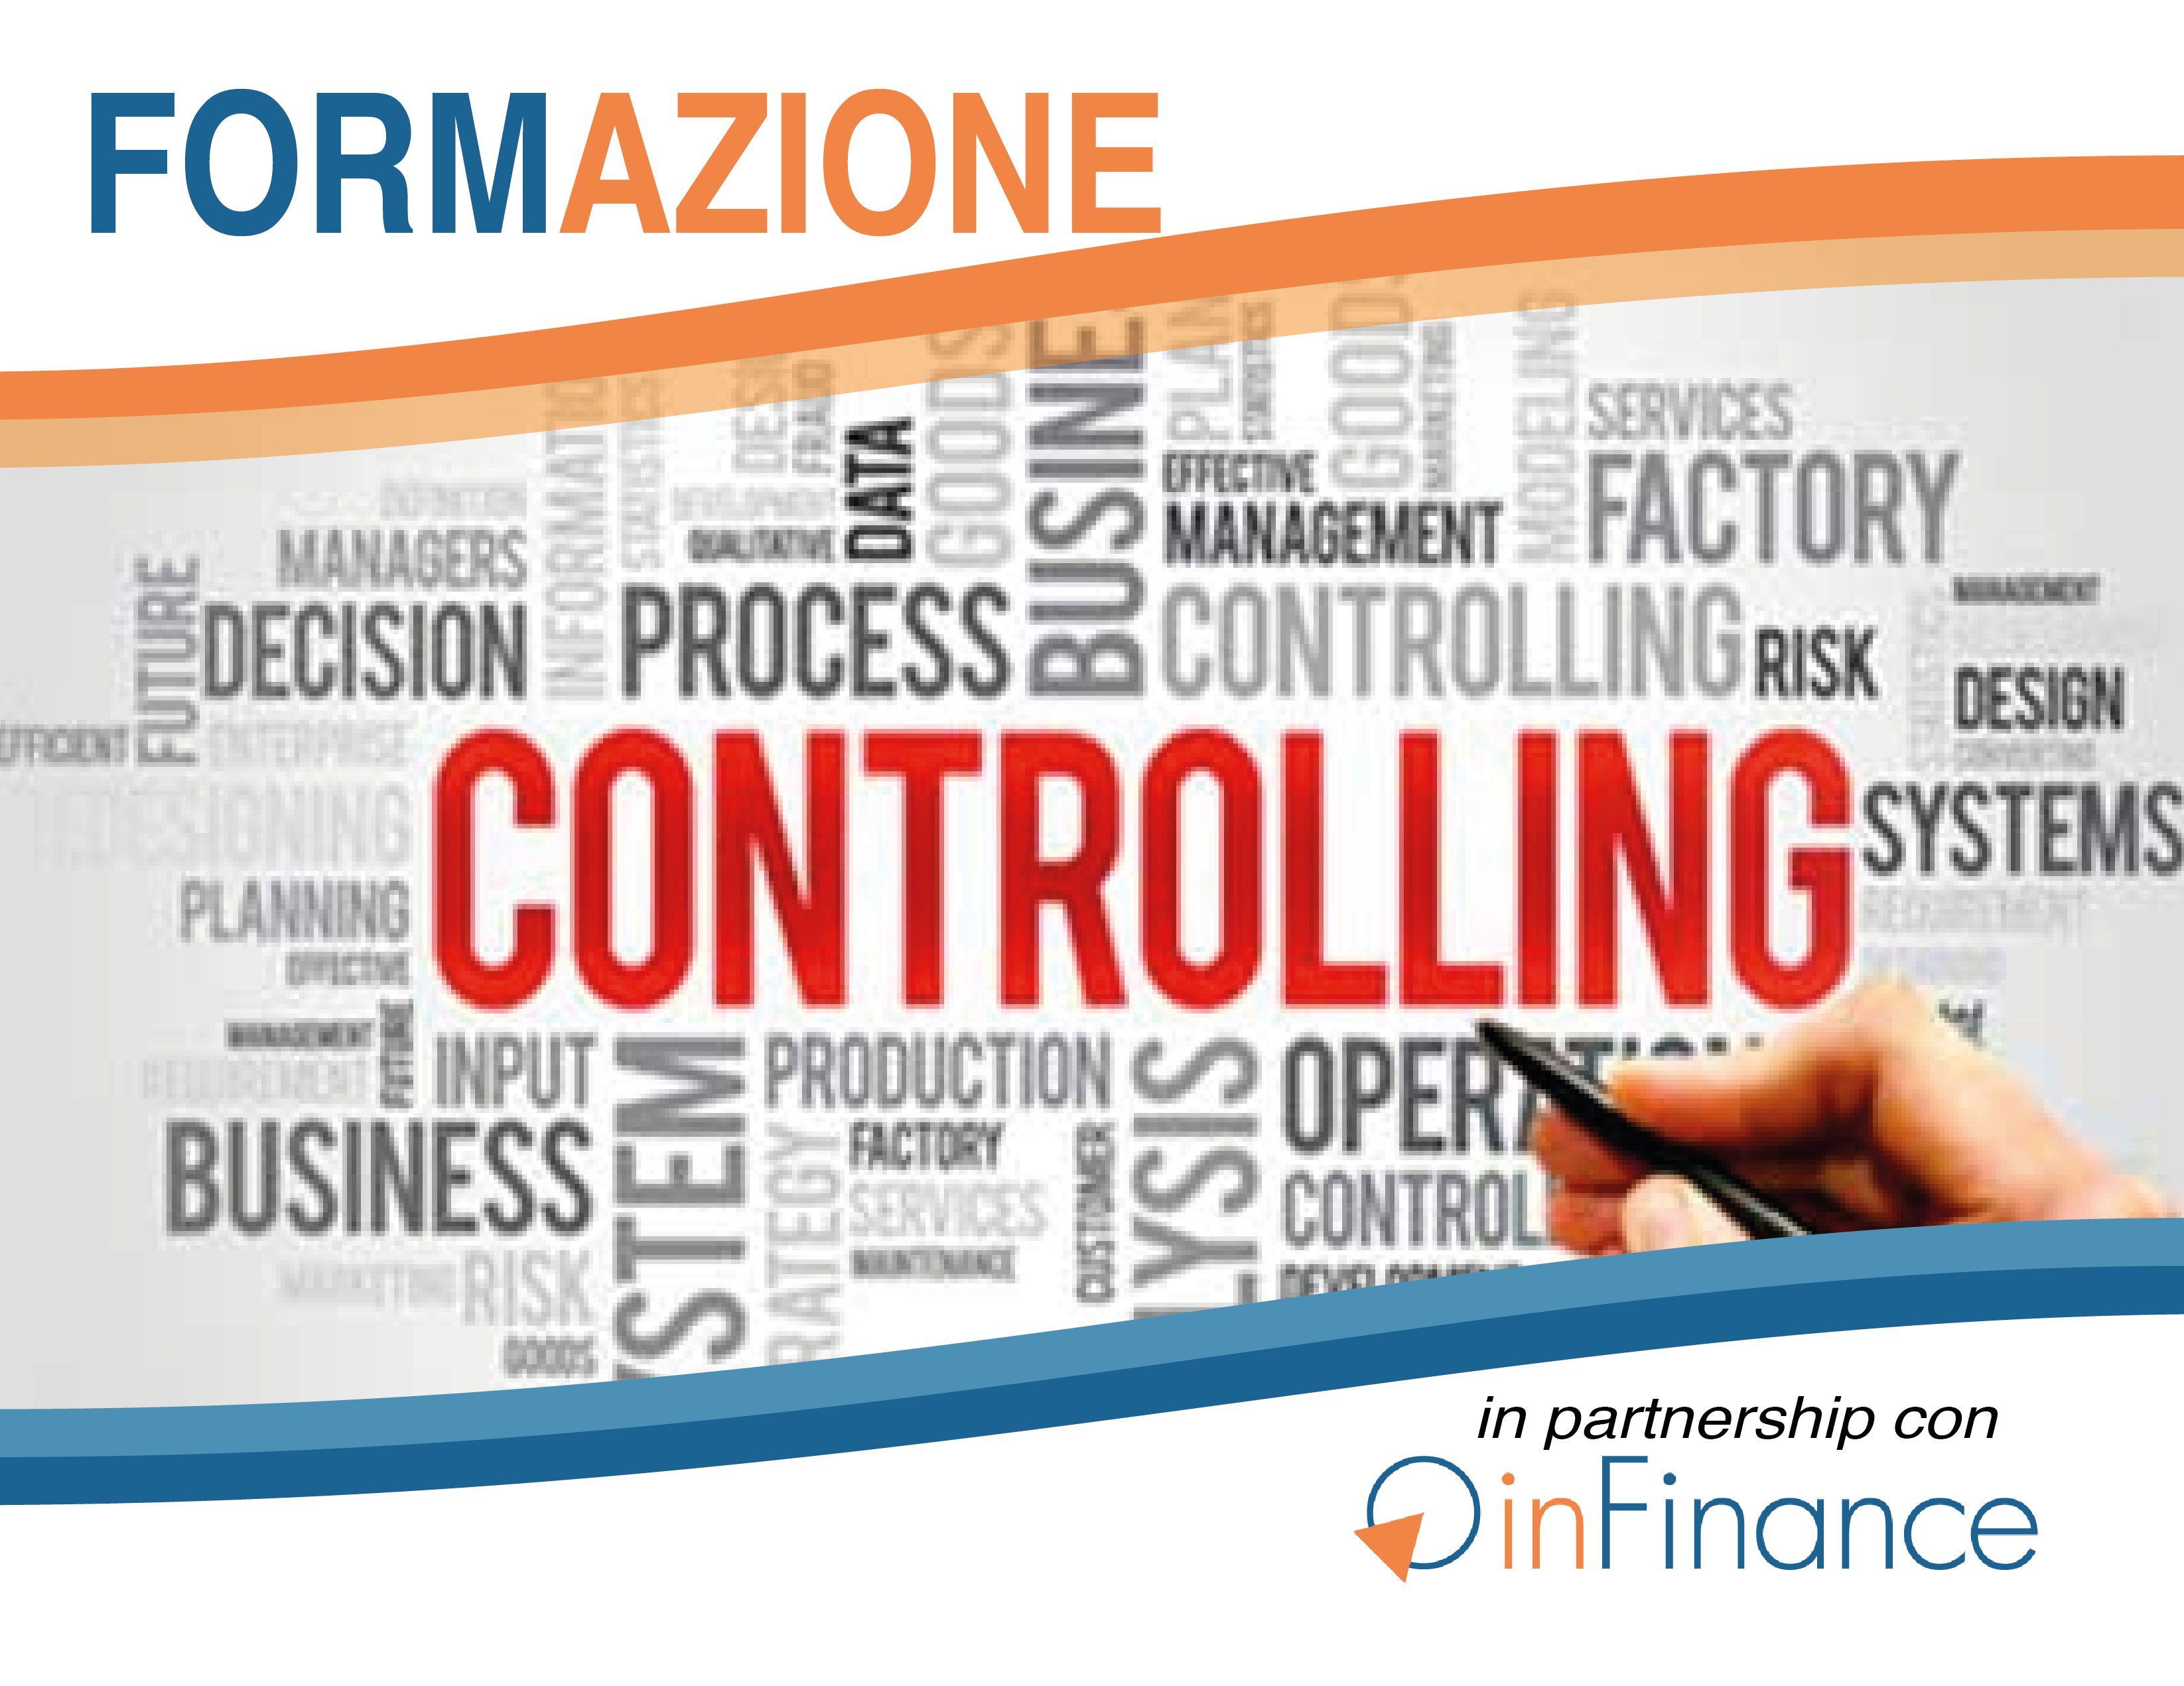 Master inFinance in Corporate Finance & Controlling